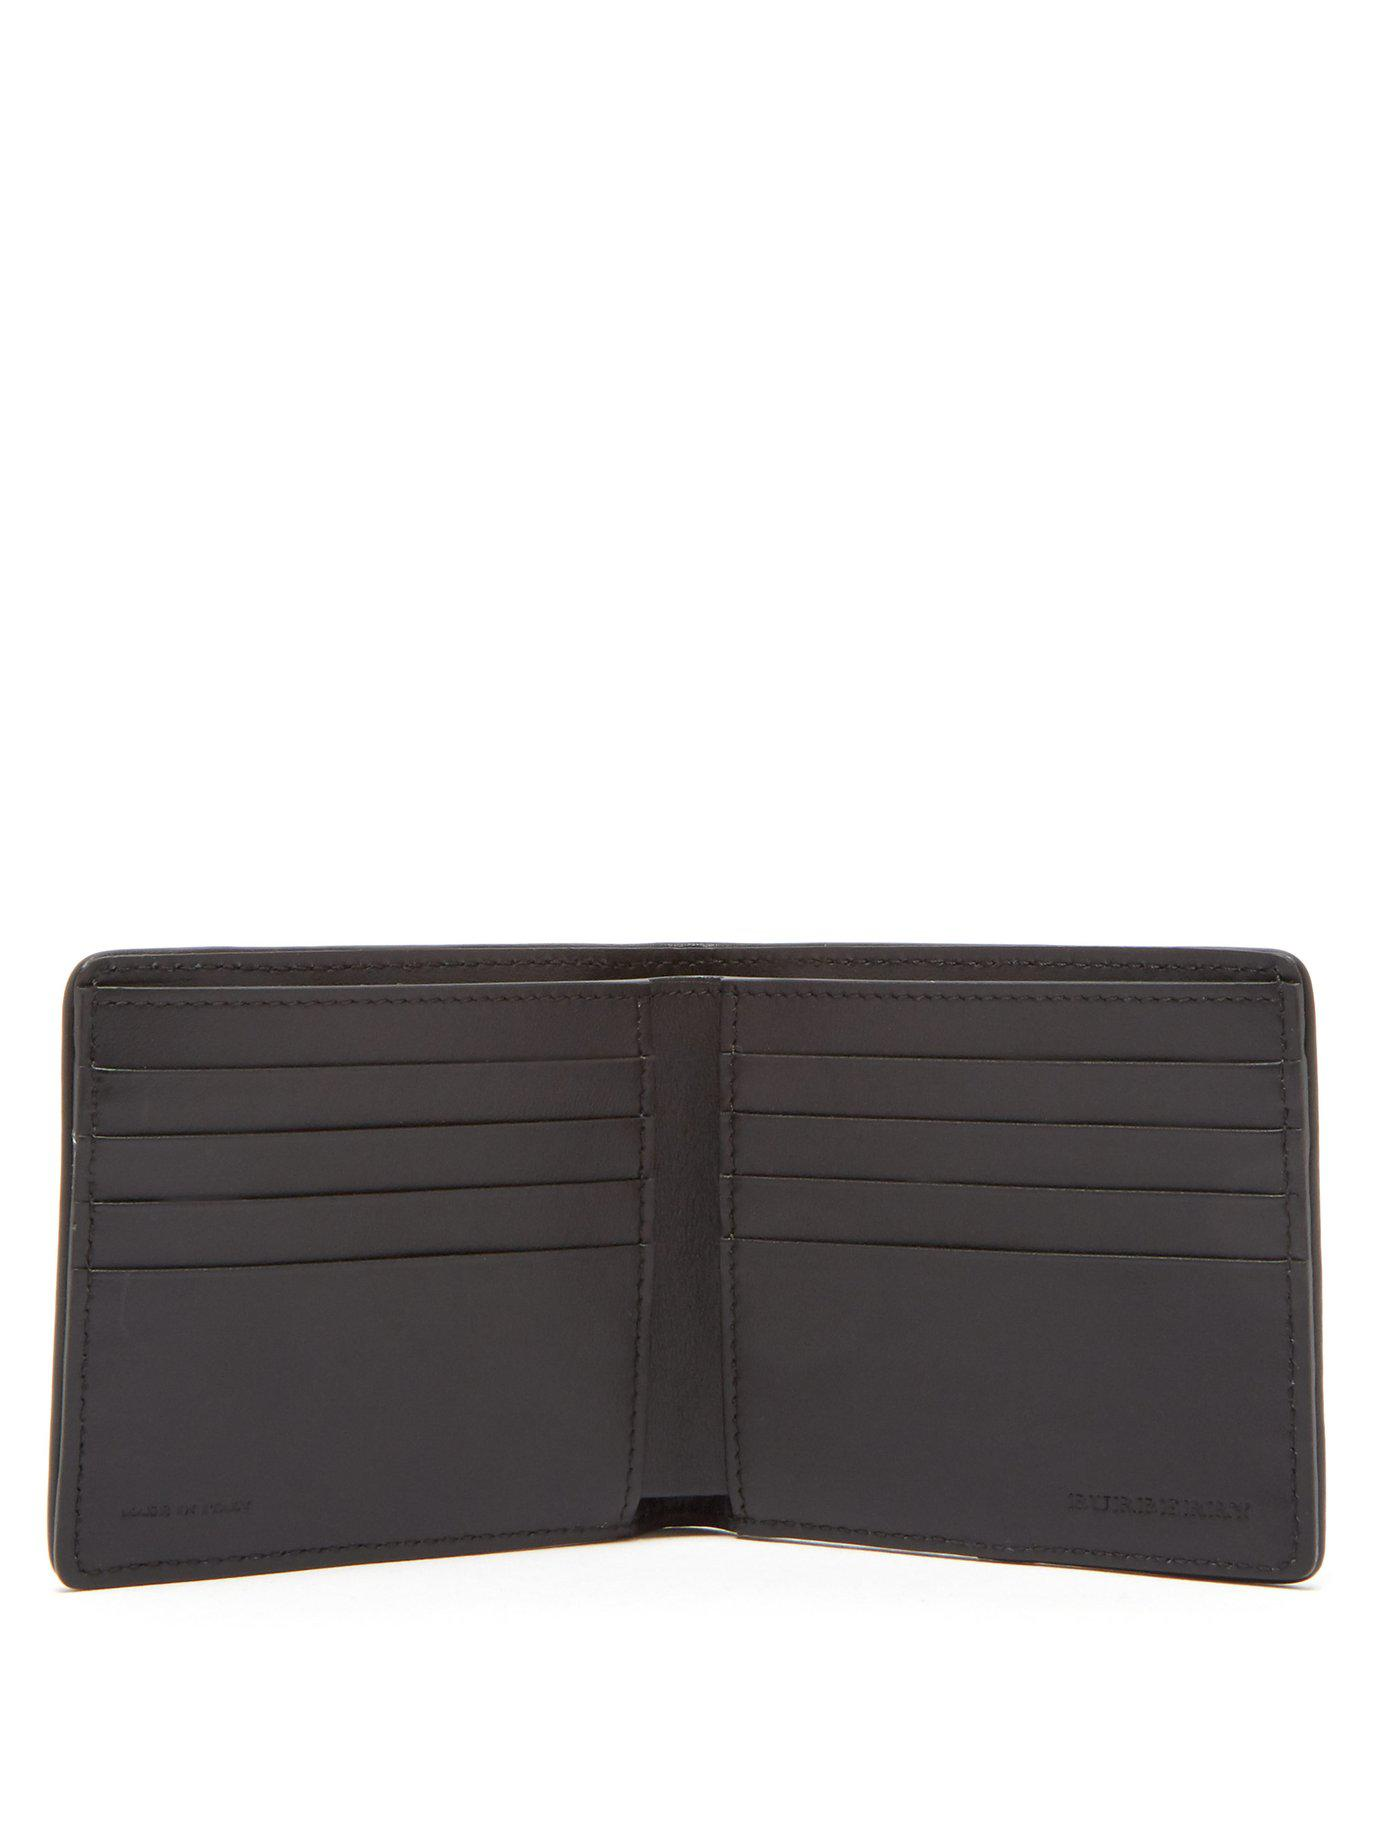 4c2e82495cc2 Lyst - Burberry Haymarket Check Bi Fold Wallet in Black for Men - Save 75%